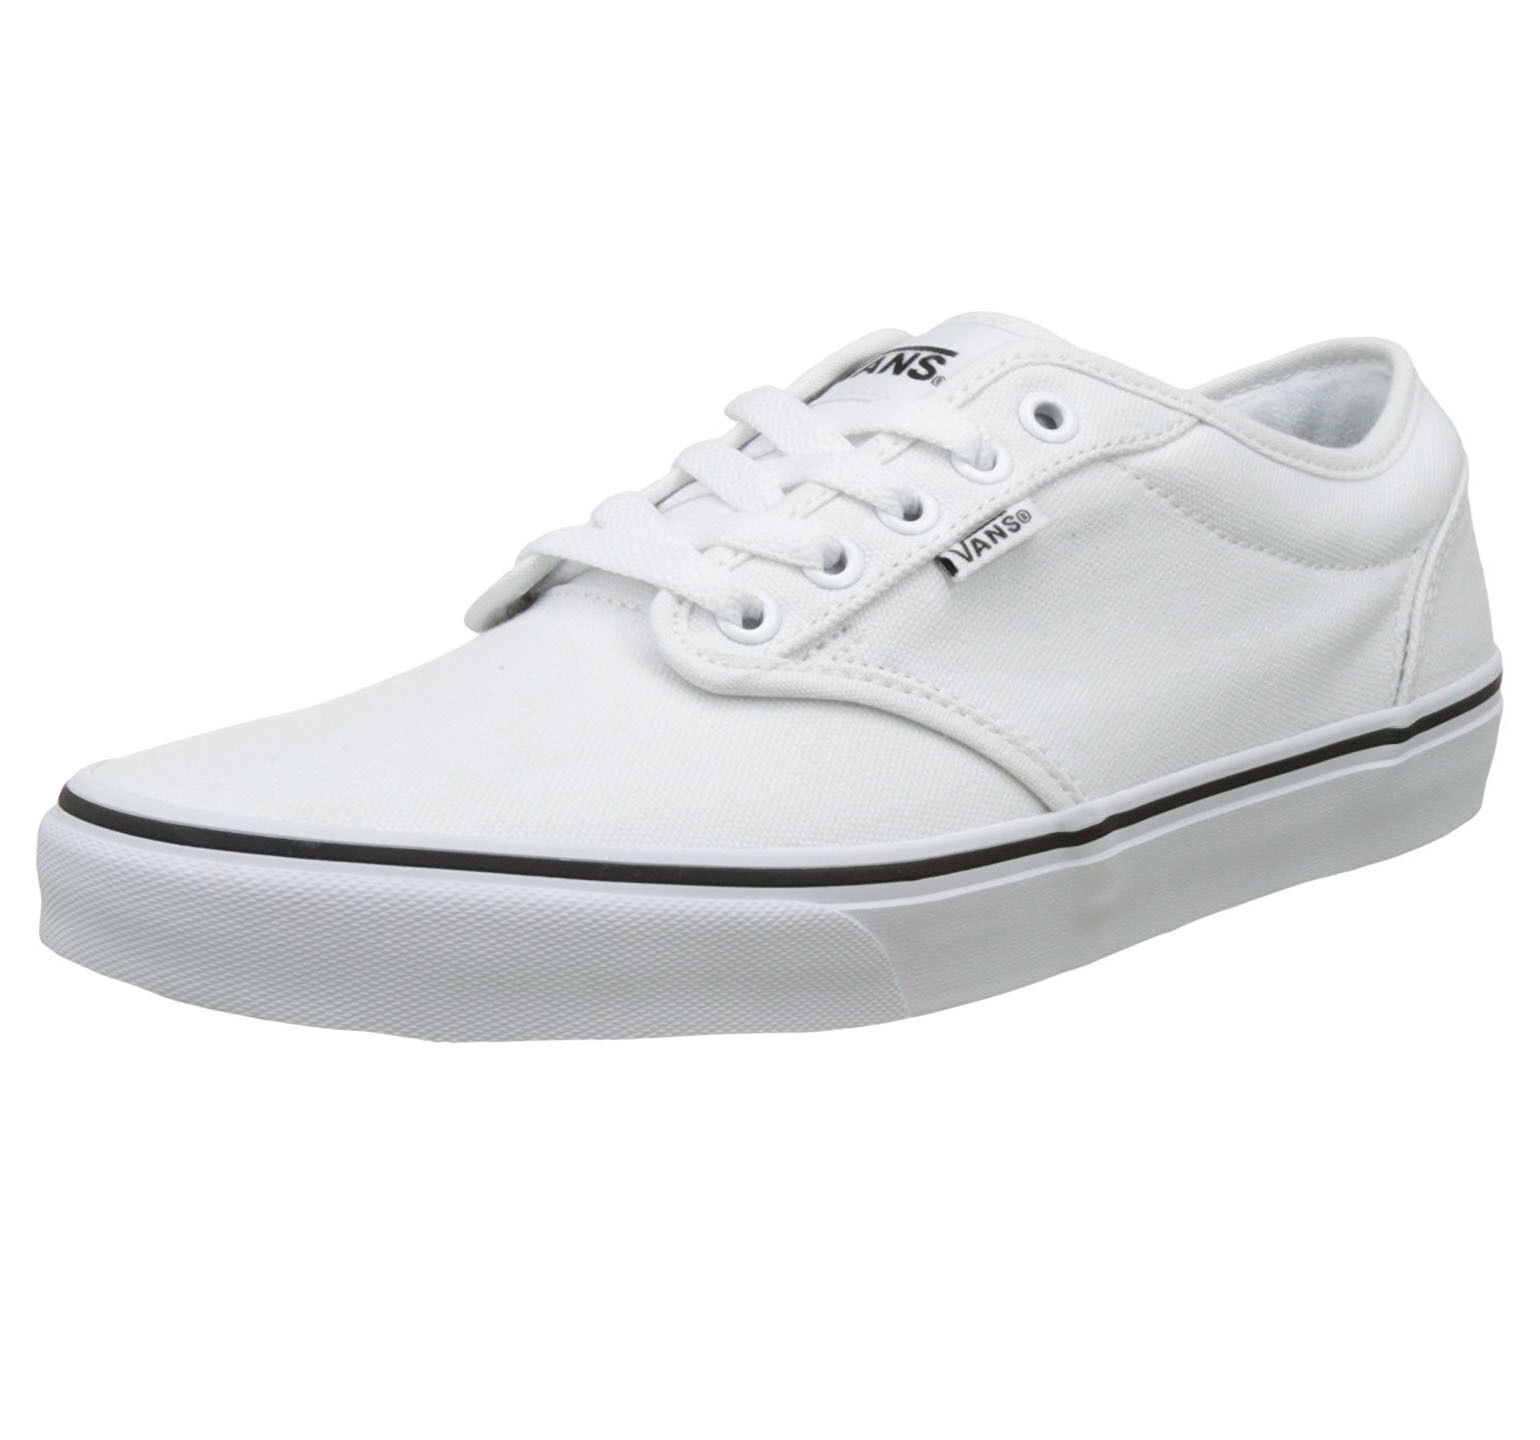 VANS Atwood  Foxing Uomo Canvas Skater Trainers Foxing  Schuhes Lace Up Plimsolls Weiß 375619